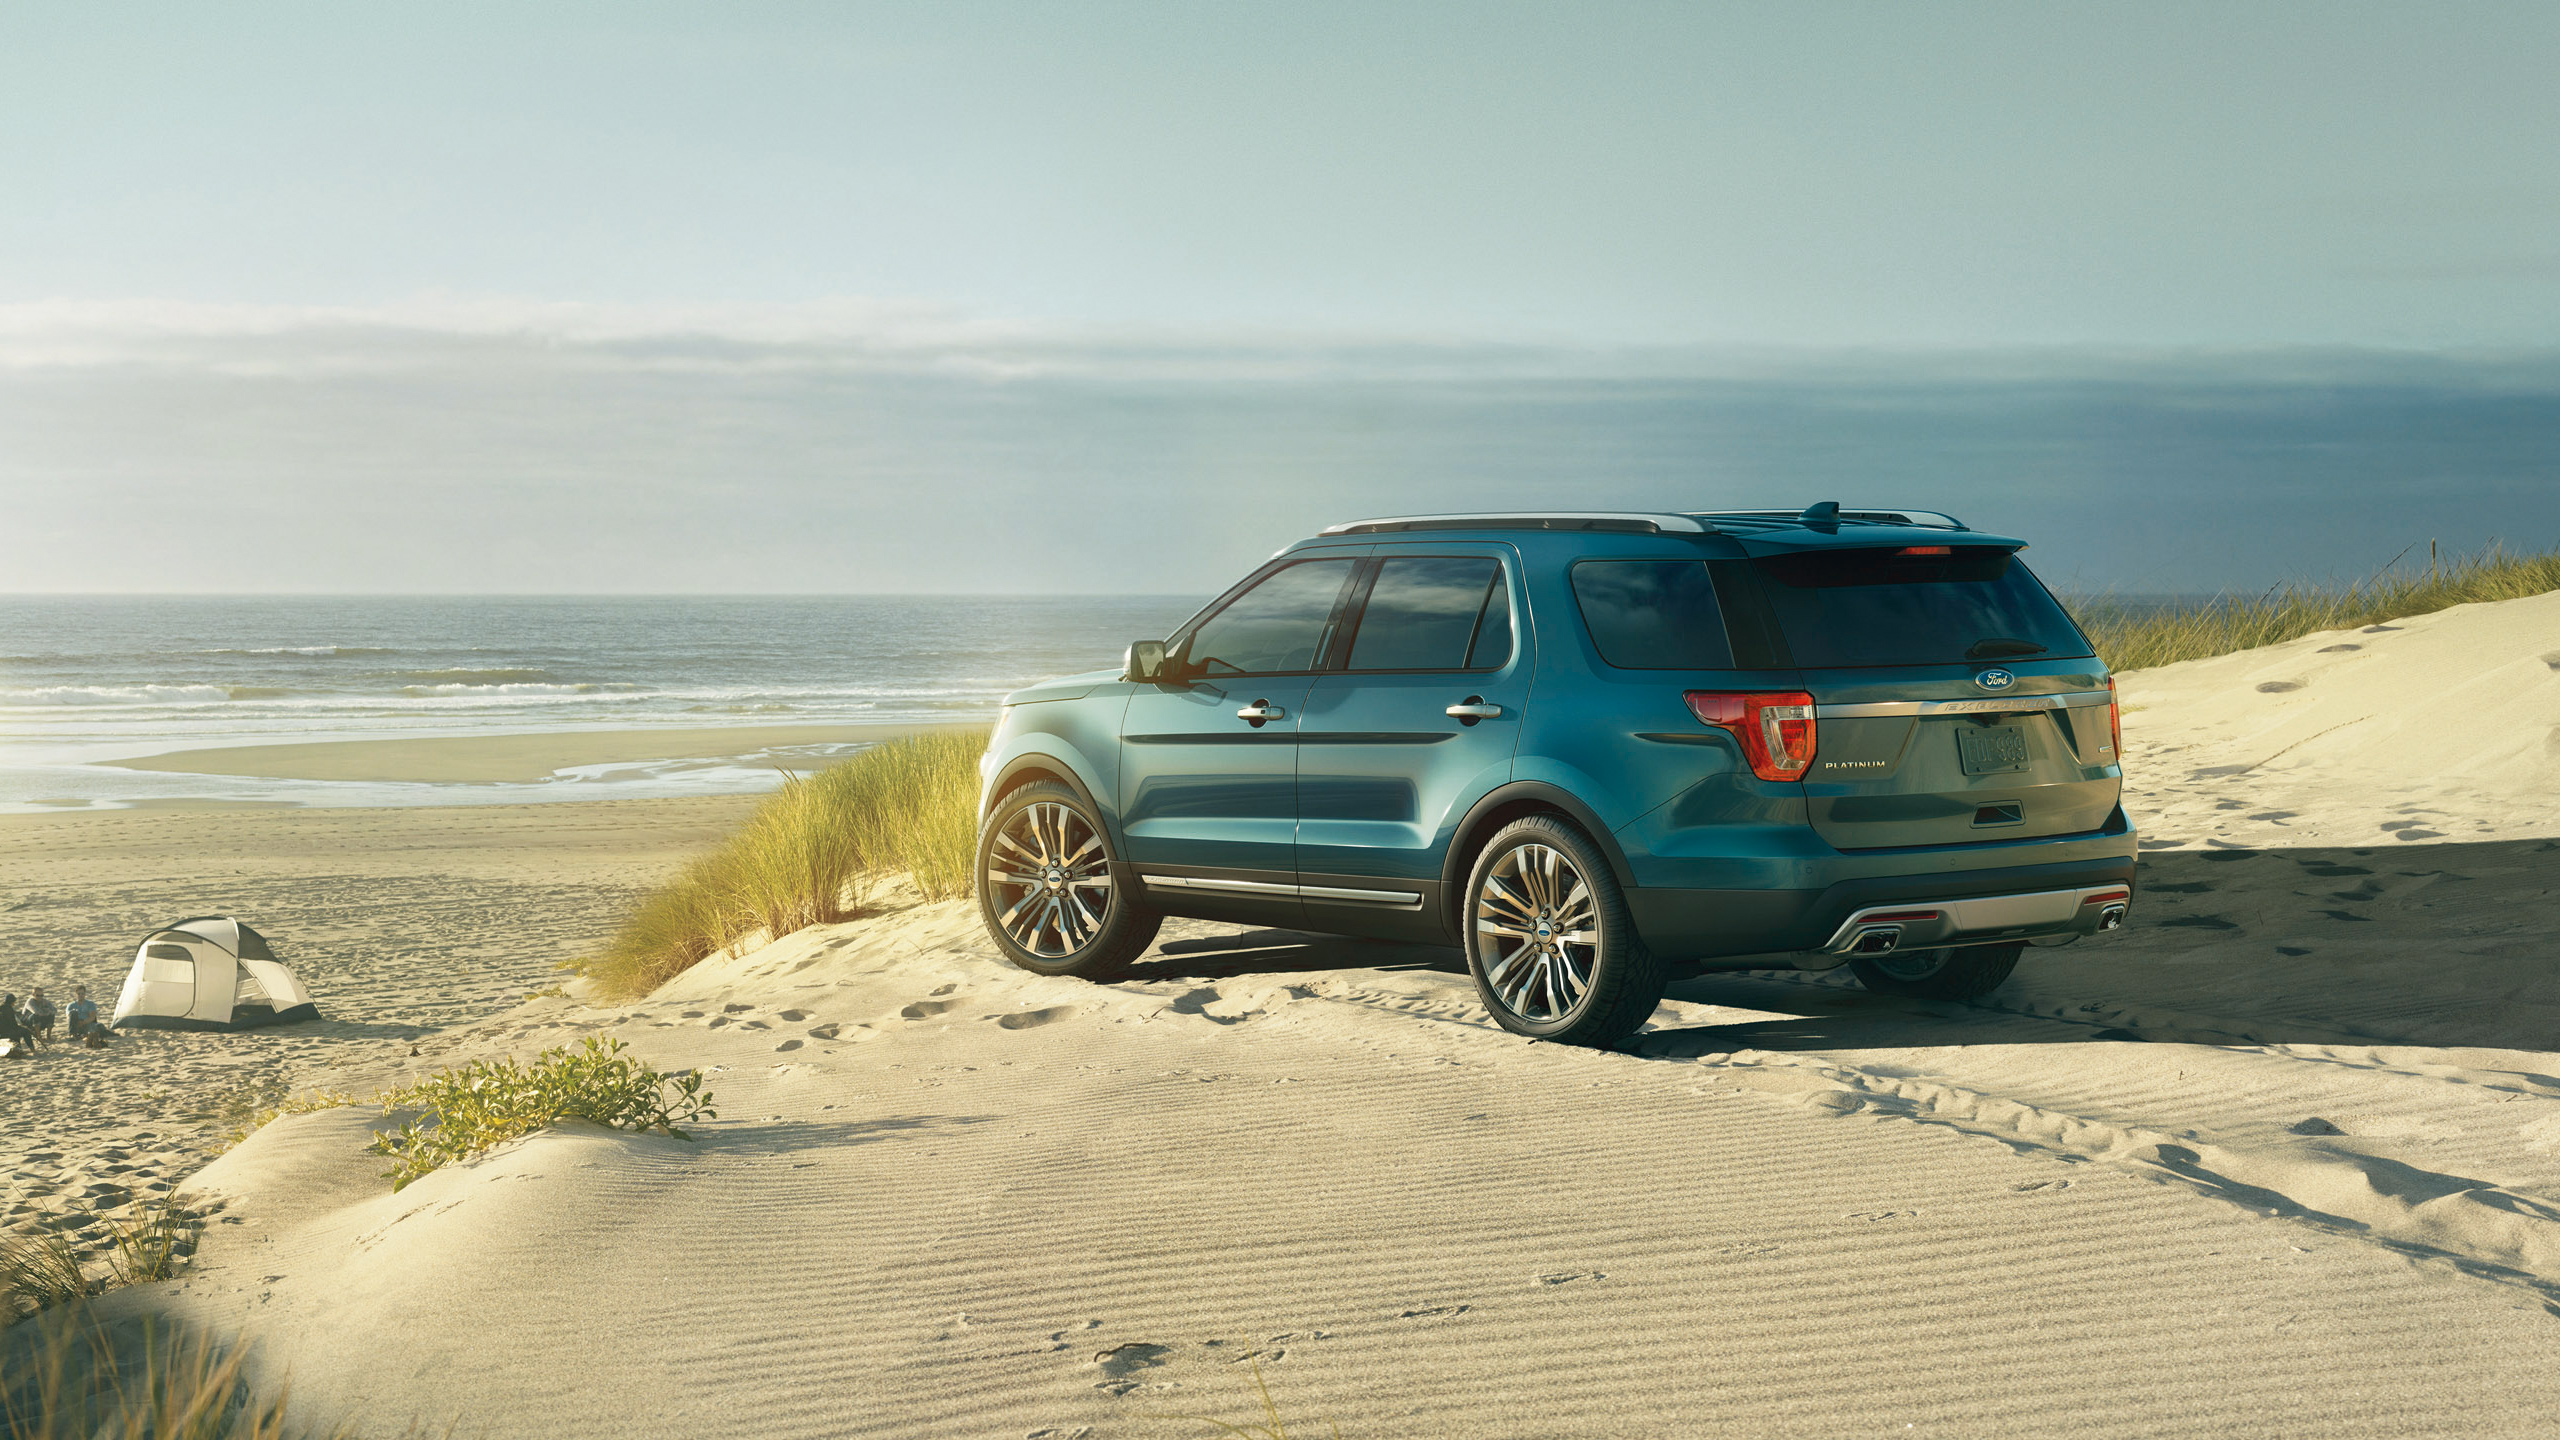 2560x1440 - Ford Explorer Wallpapers 2